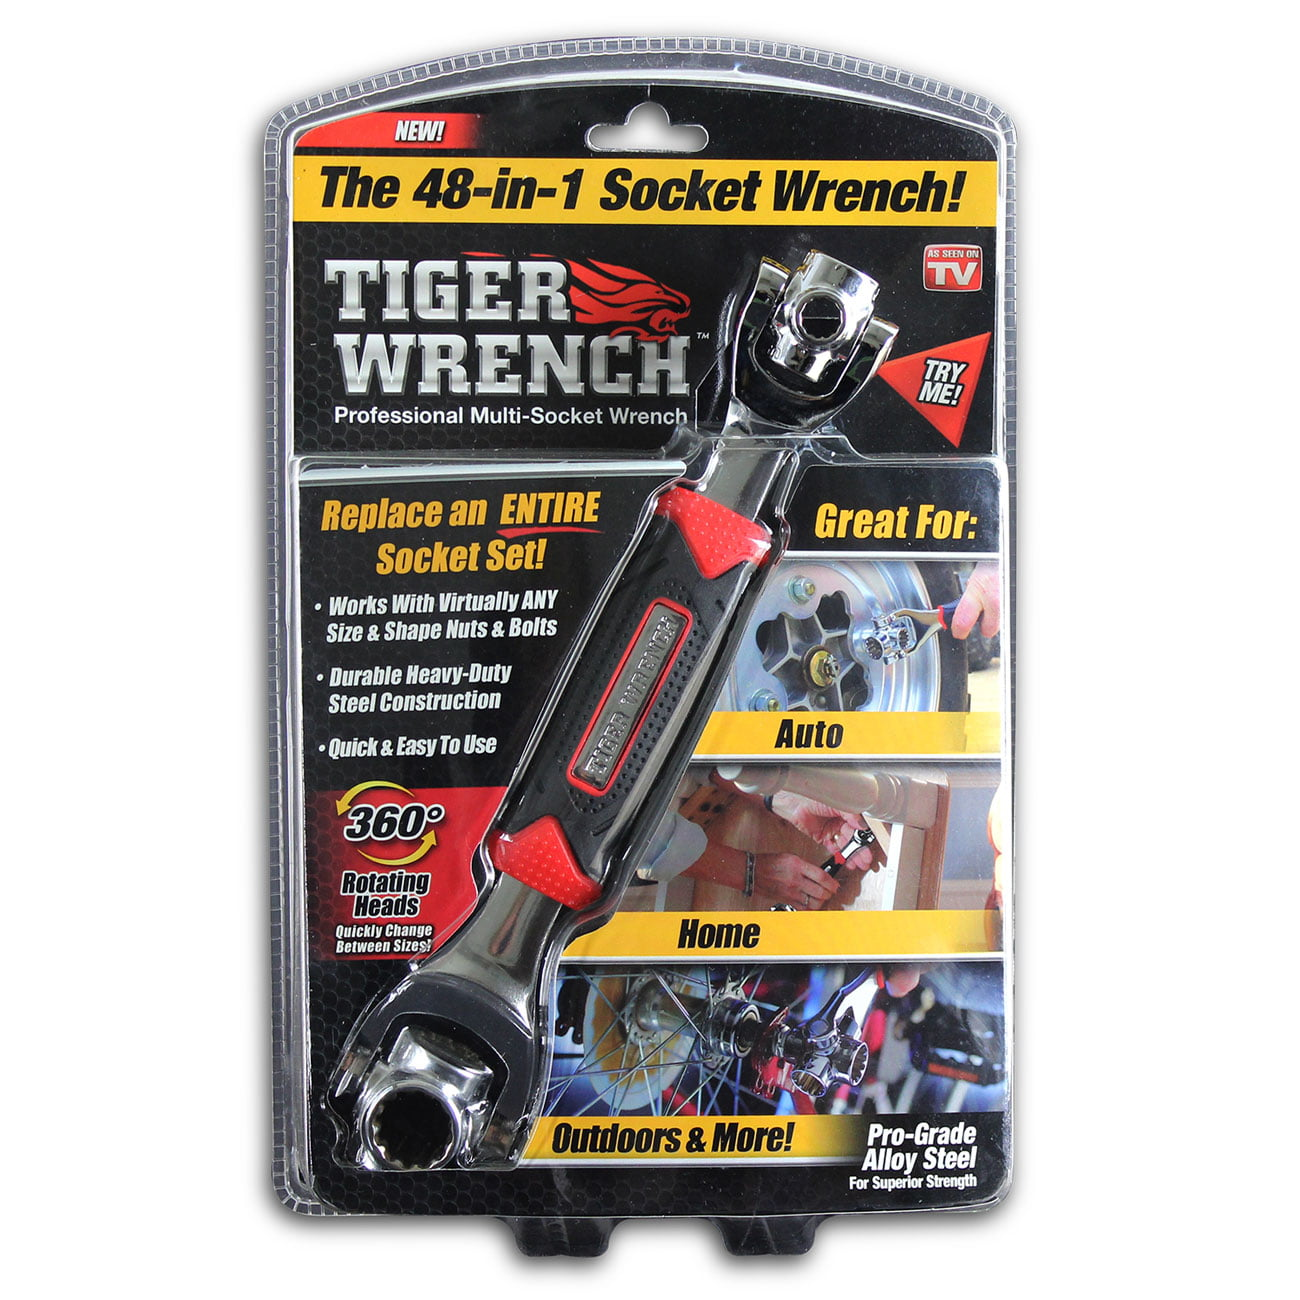 Tiger Wrench, 48-in-1 Steel Socket Wrench with 360 Degree Rotating Heads, As Seen on TV